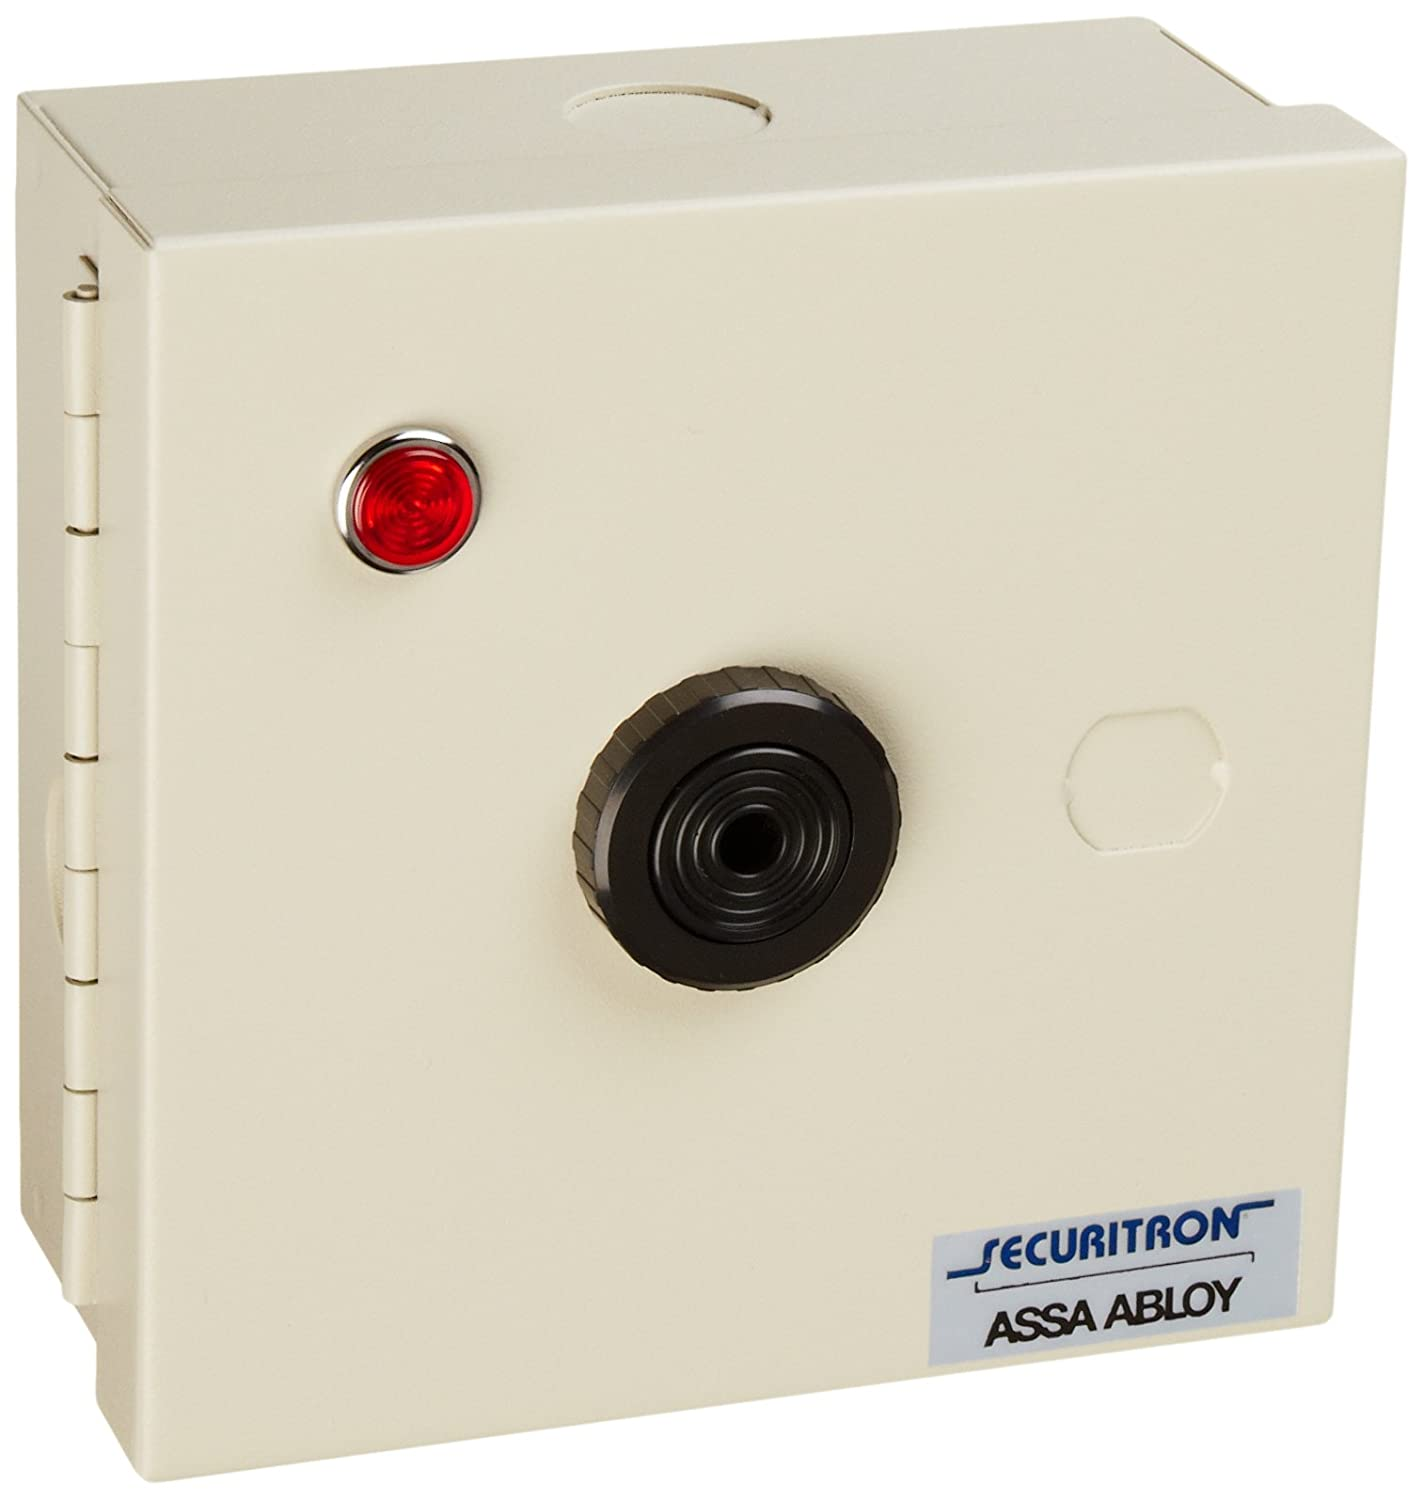 Amazon.com: Securitron ba-dpa-12 Puerta propped Alarma ...